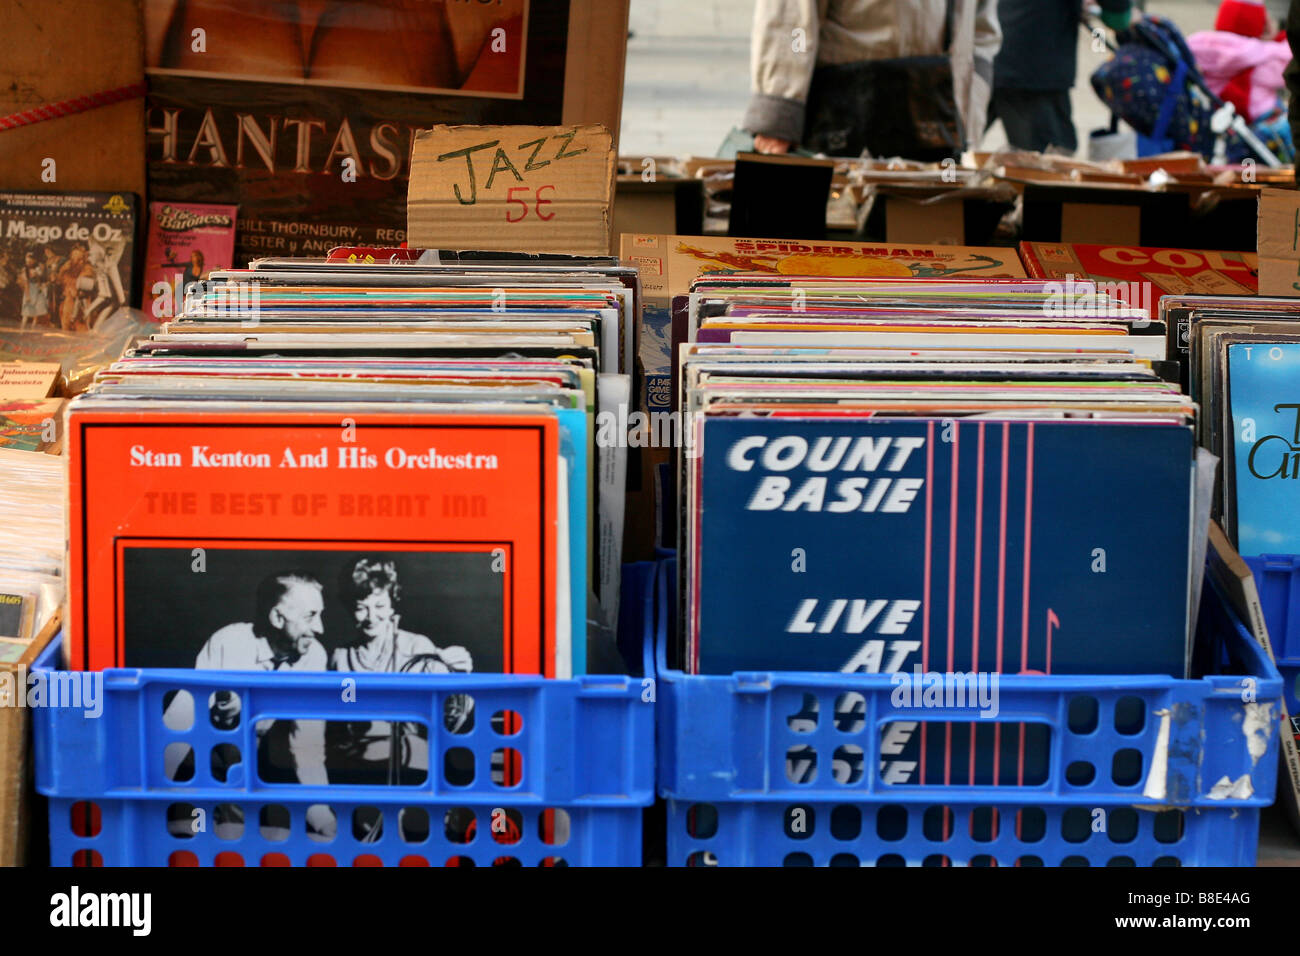 box of old vinyl jazz records at a market in barcelona spain - Stock Image